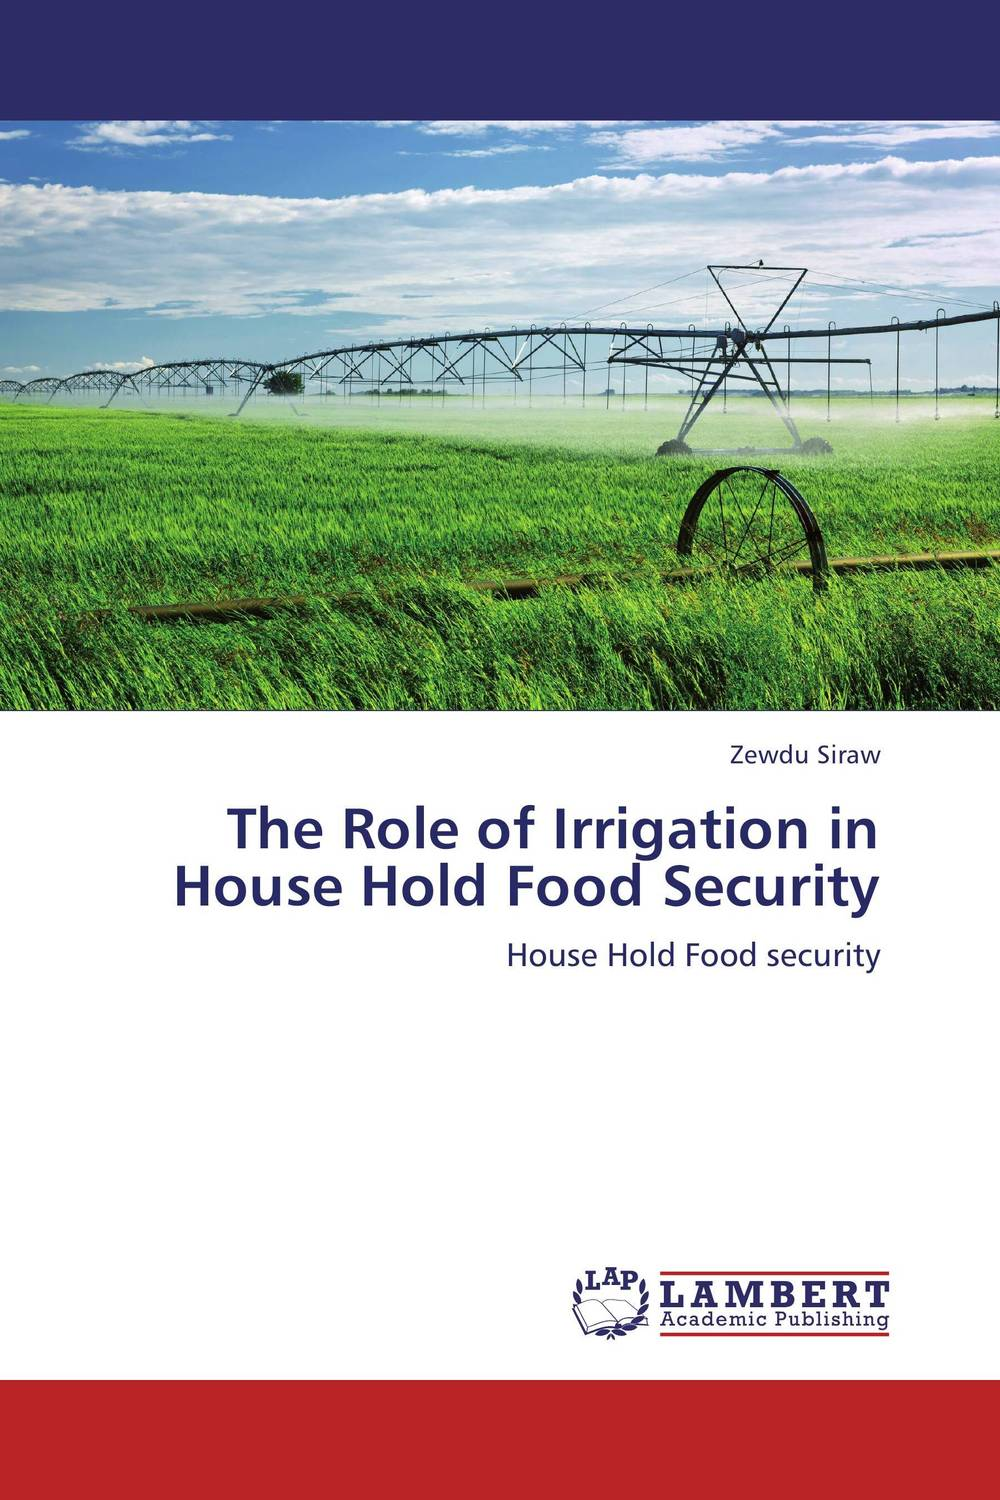 купить The Role of Irrigation in House Hold Food Security недорого